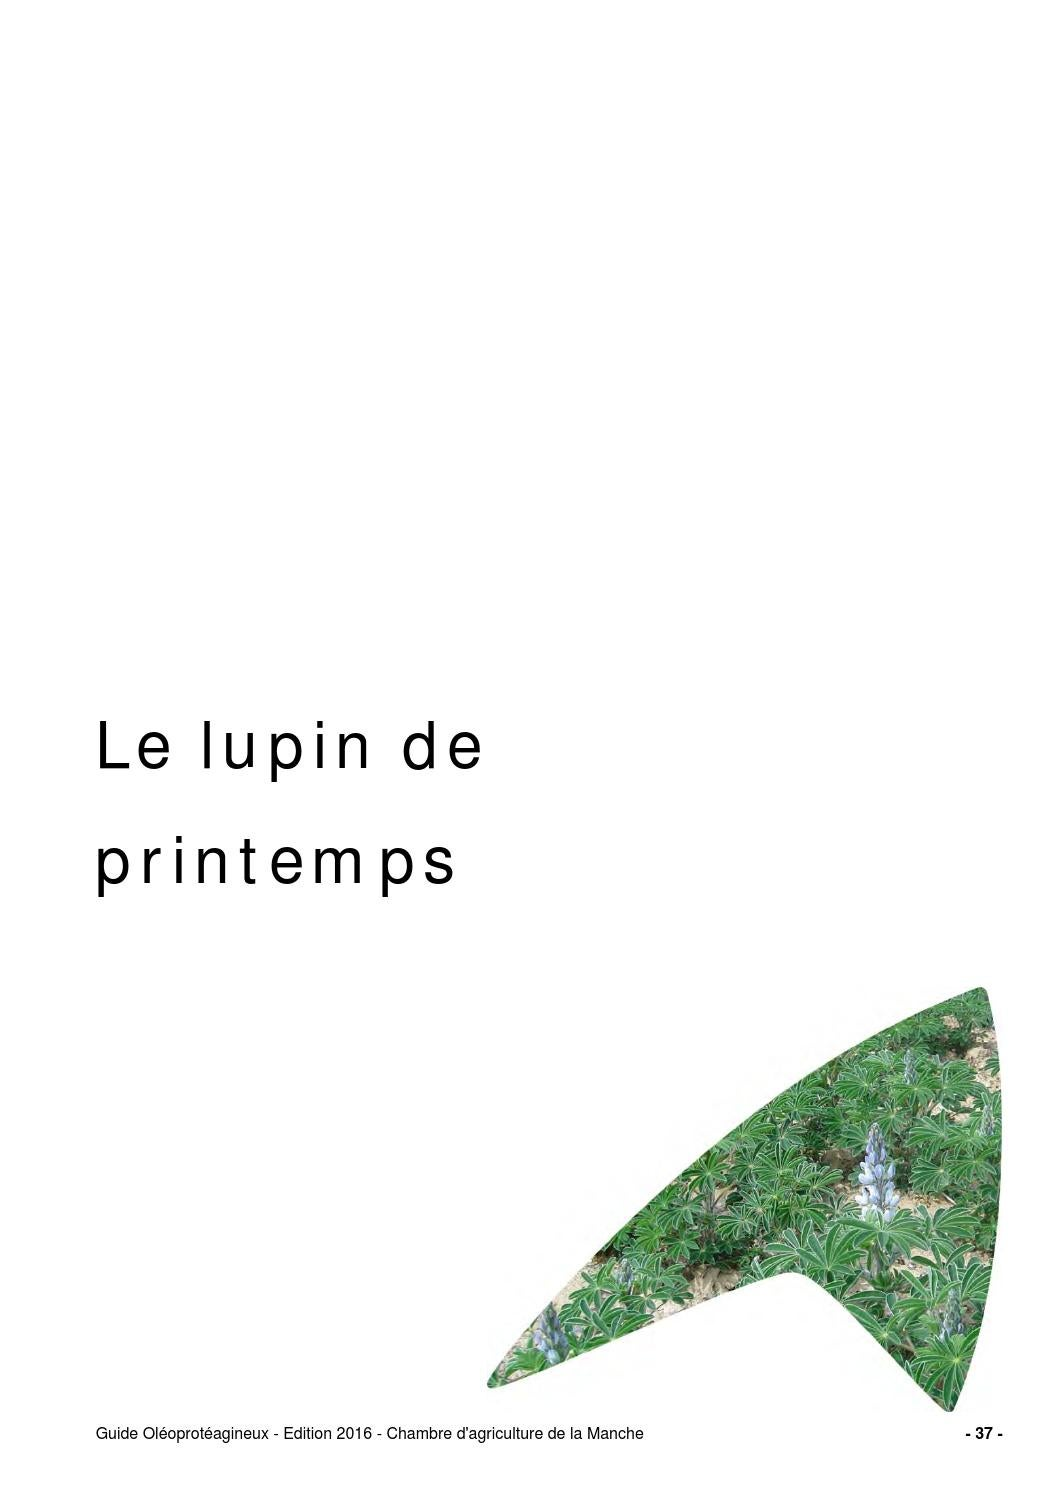 guide lupin de printemps 2015 by chambre d 39 agriculture